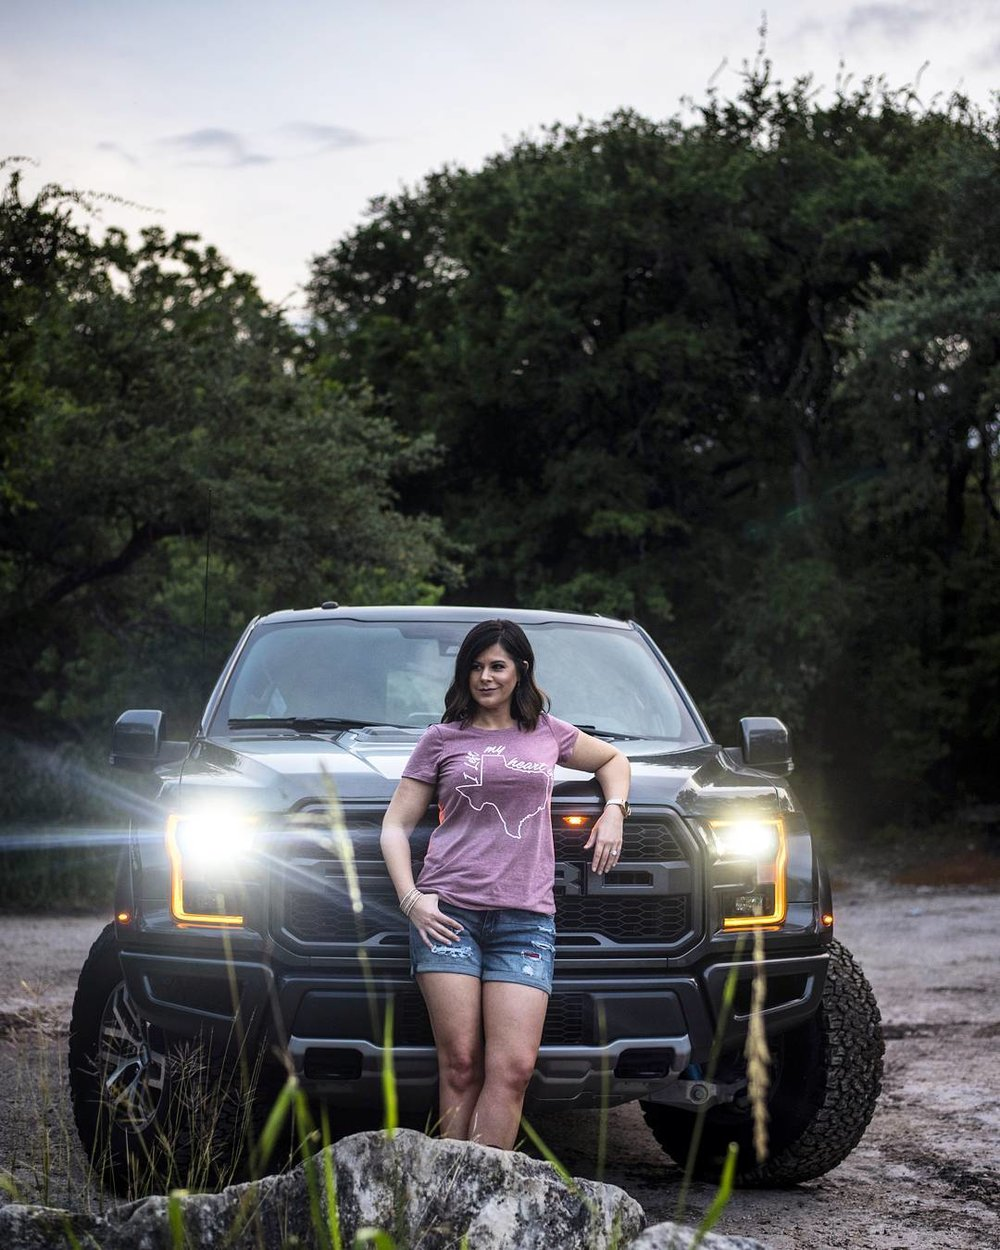 ford raptor by weston carls.jpg